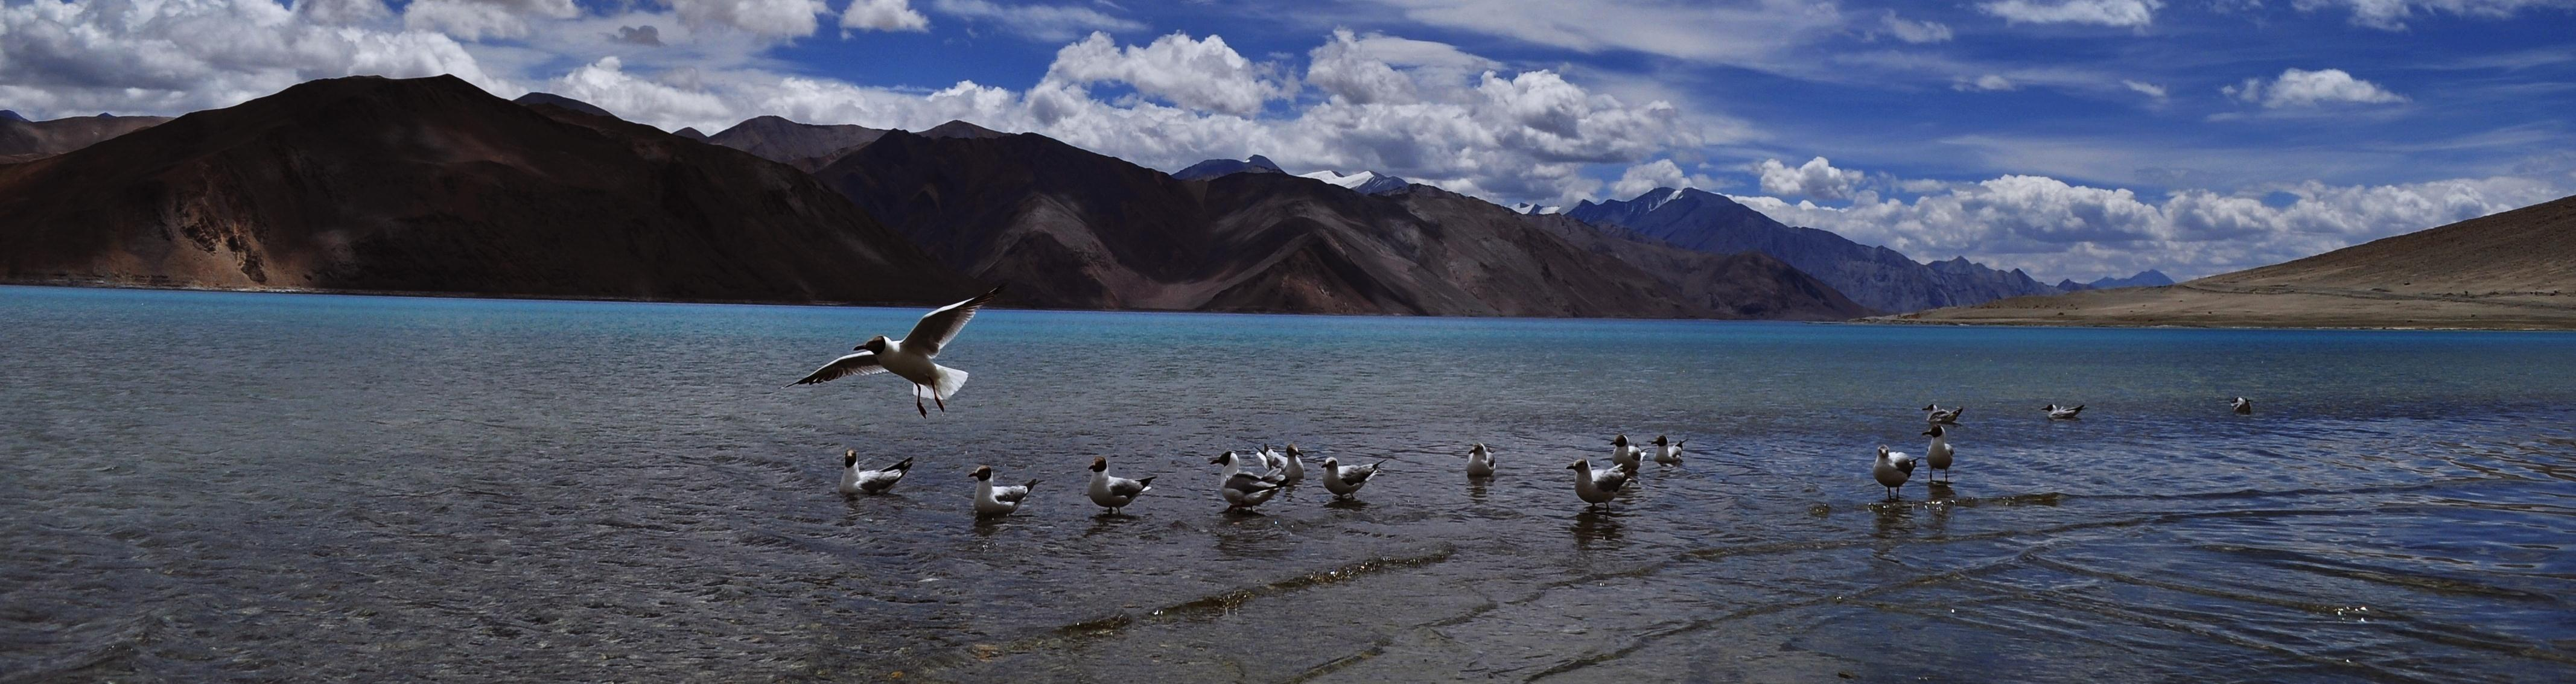 Birding Tours in Ladakh